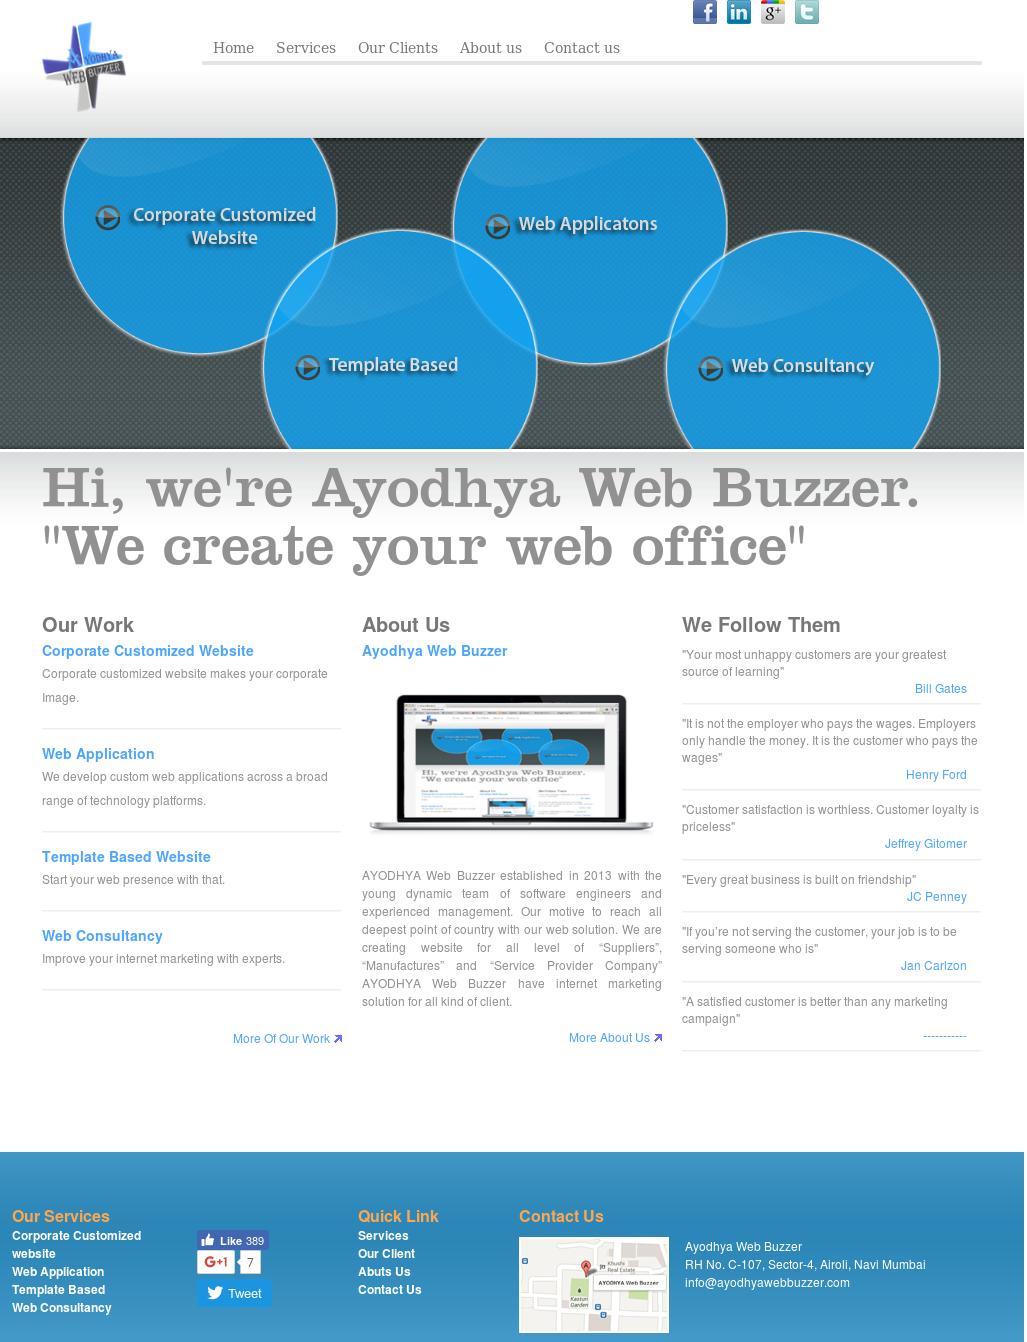 Ayodhya Web Buzzer Competitors, Revenue and Employees - Owler